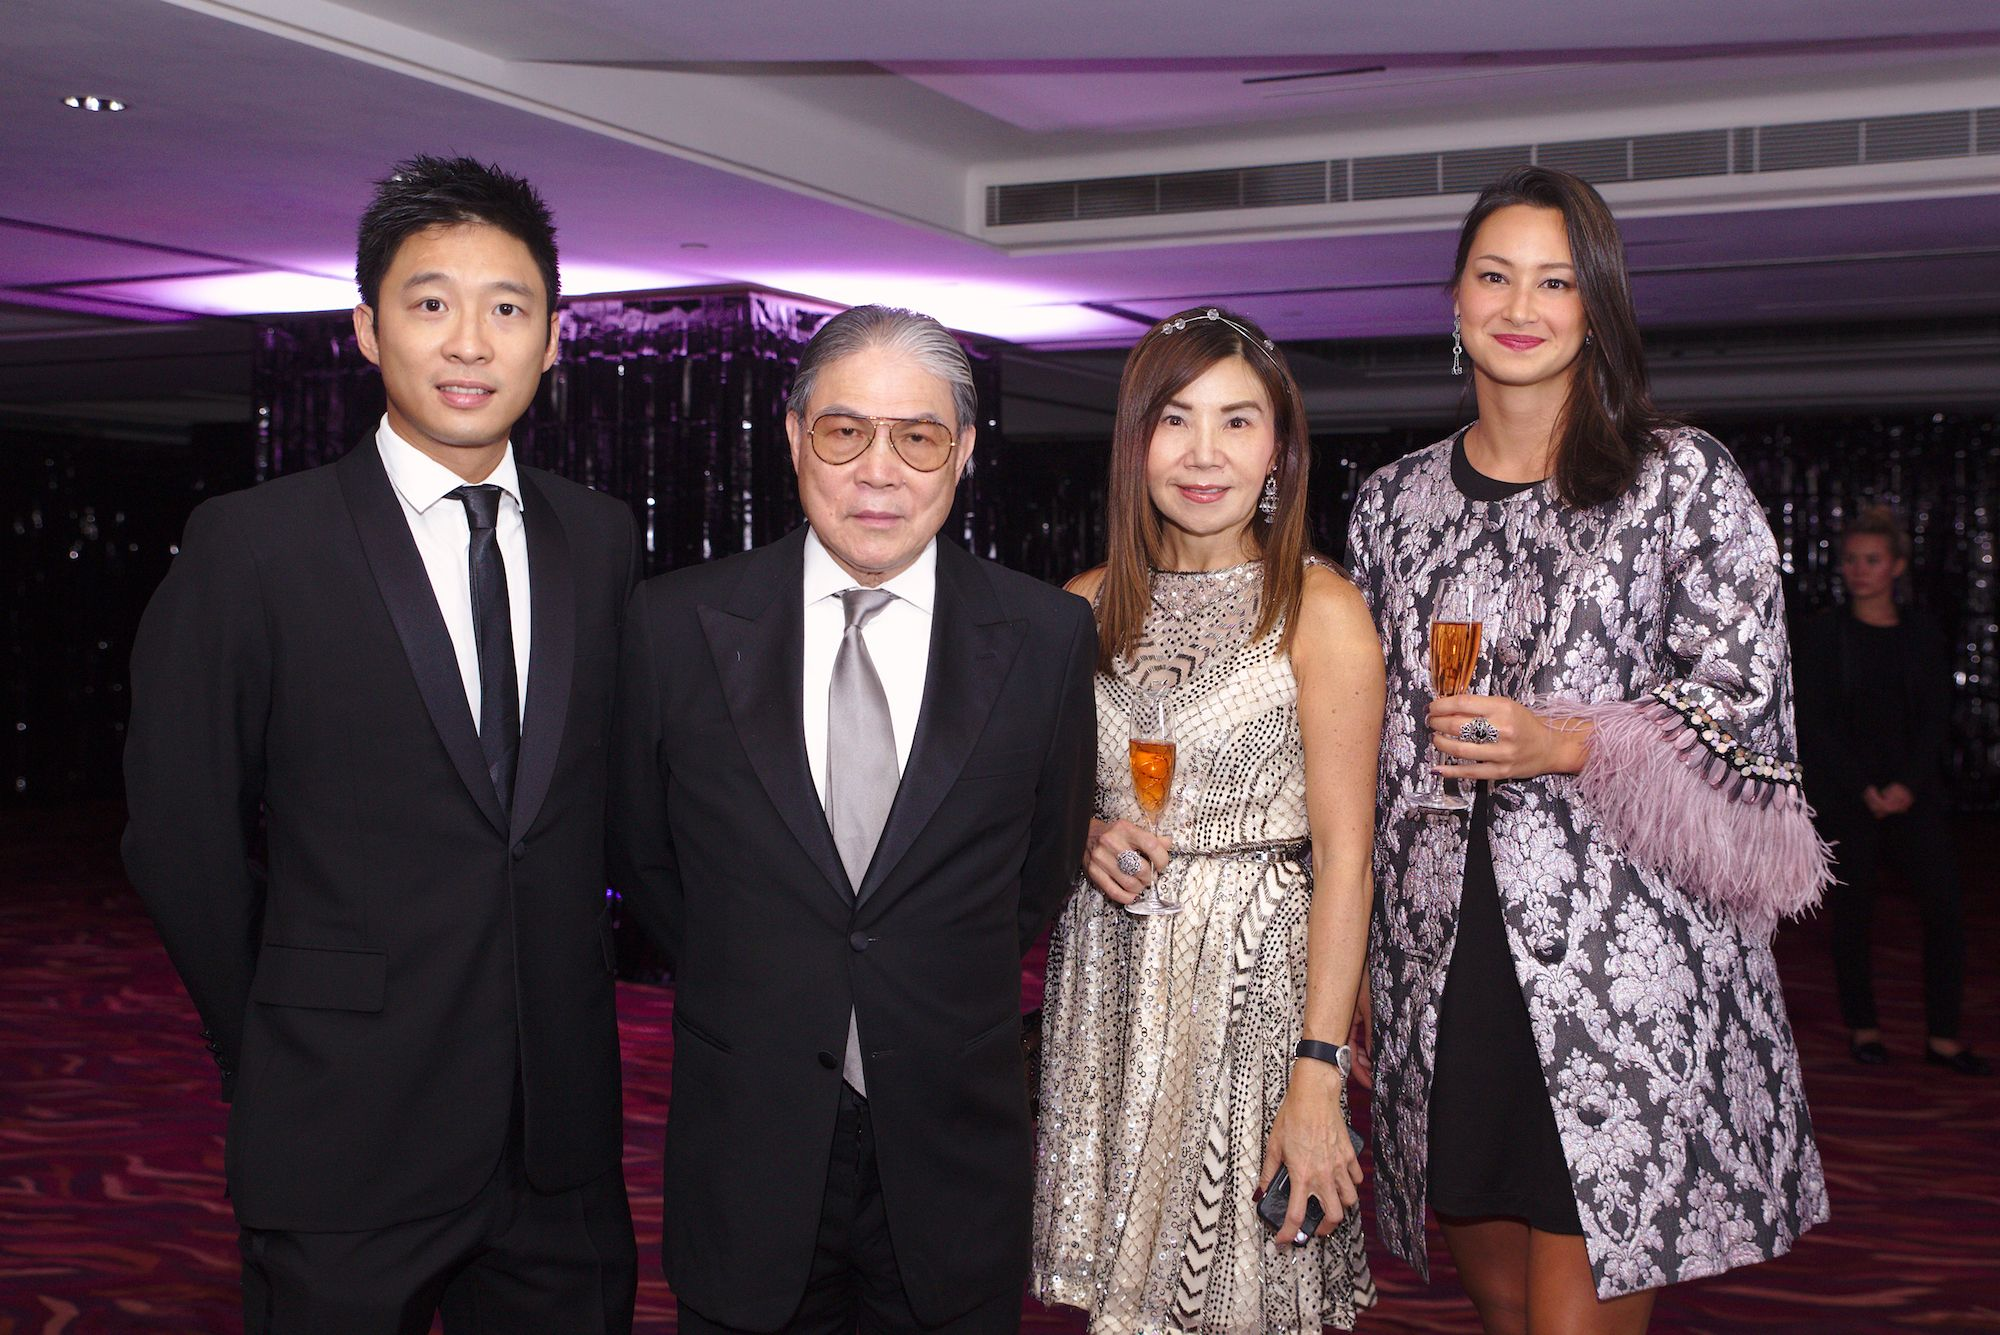 Eric Fok, Timothy Fok, Esther Ma, Camille Cheng